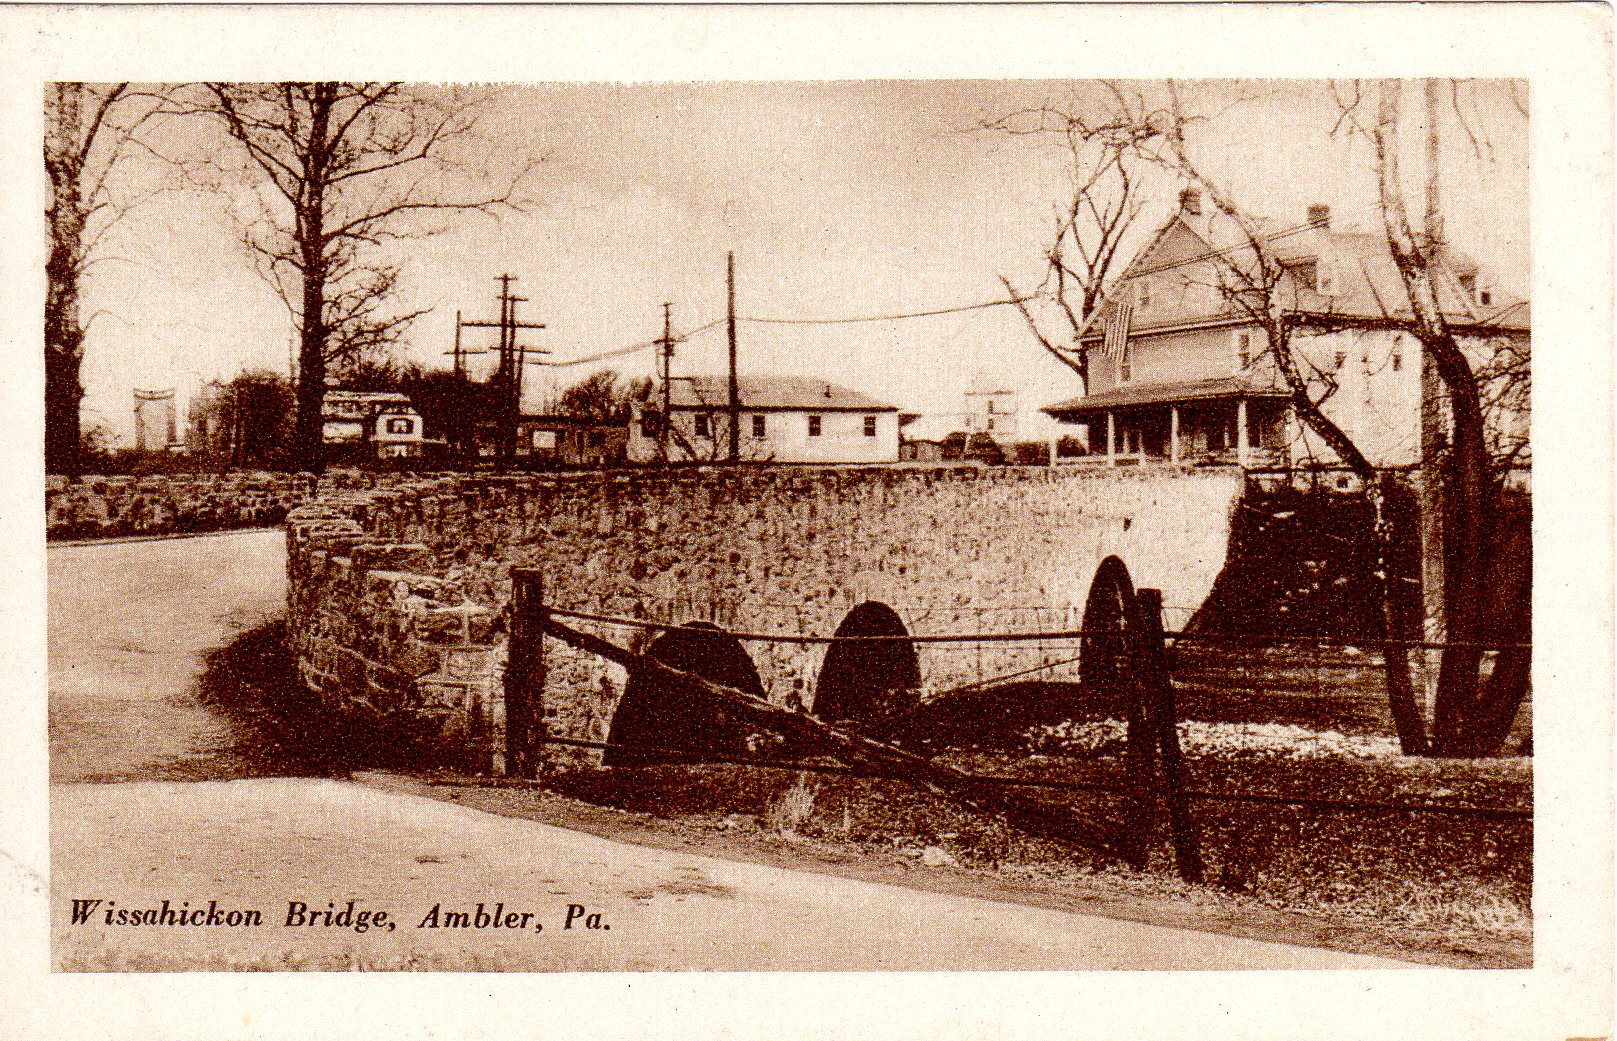 Post Card Collection (E Simon)_2682_49_Wissahickon Bridge, Ambler, Pa